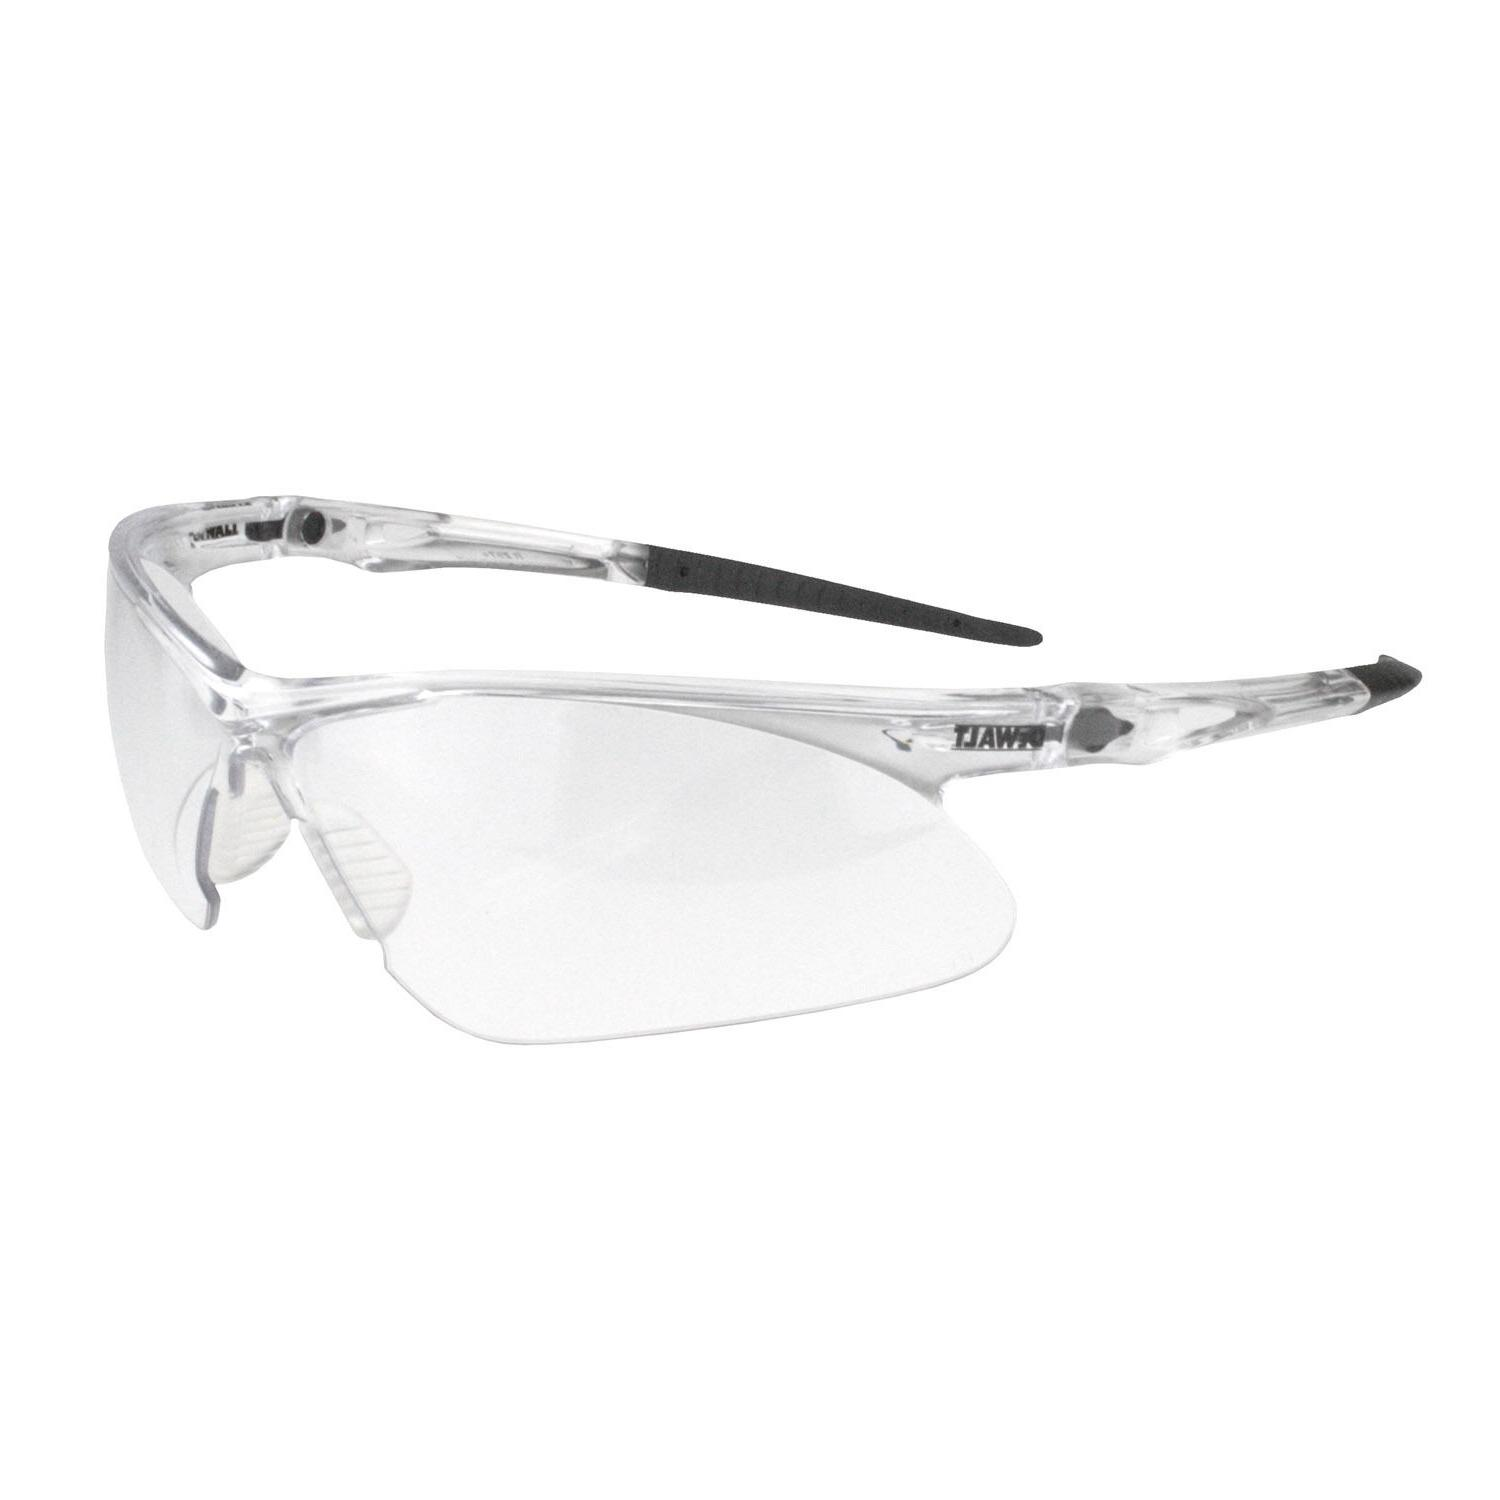 dpg102 1 recip safety glasses clear lens